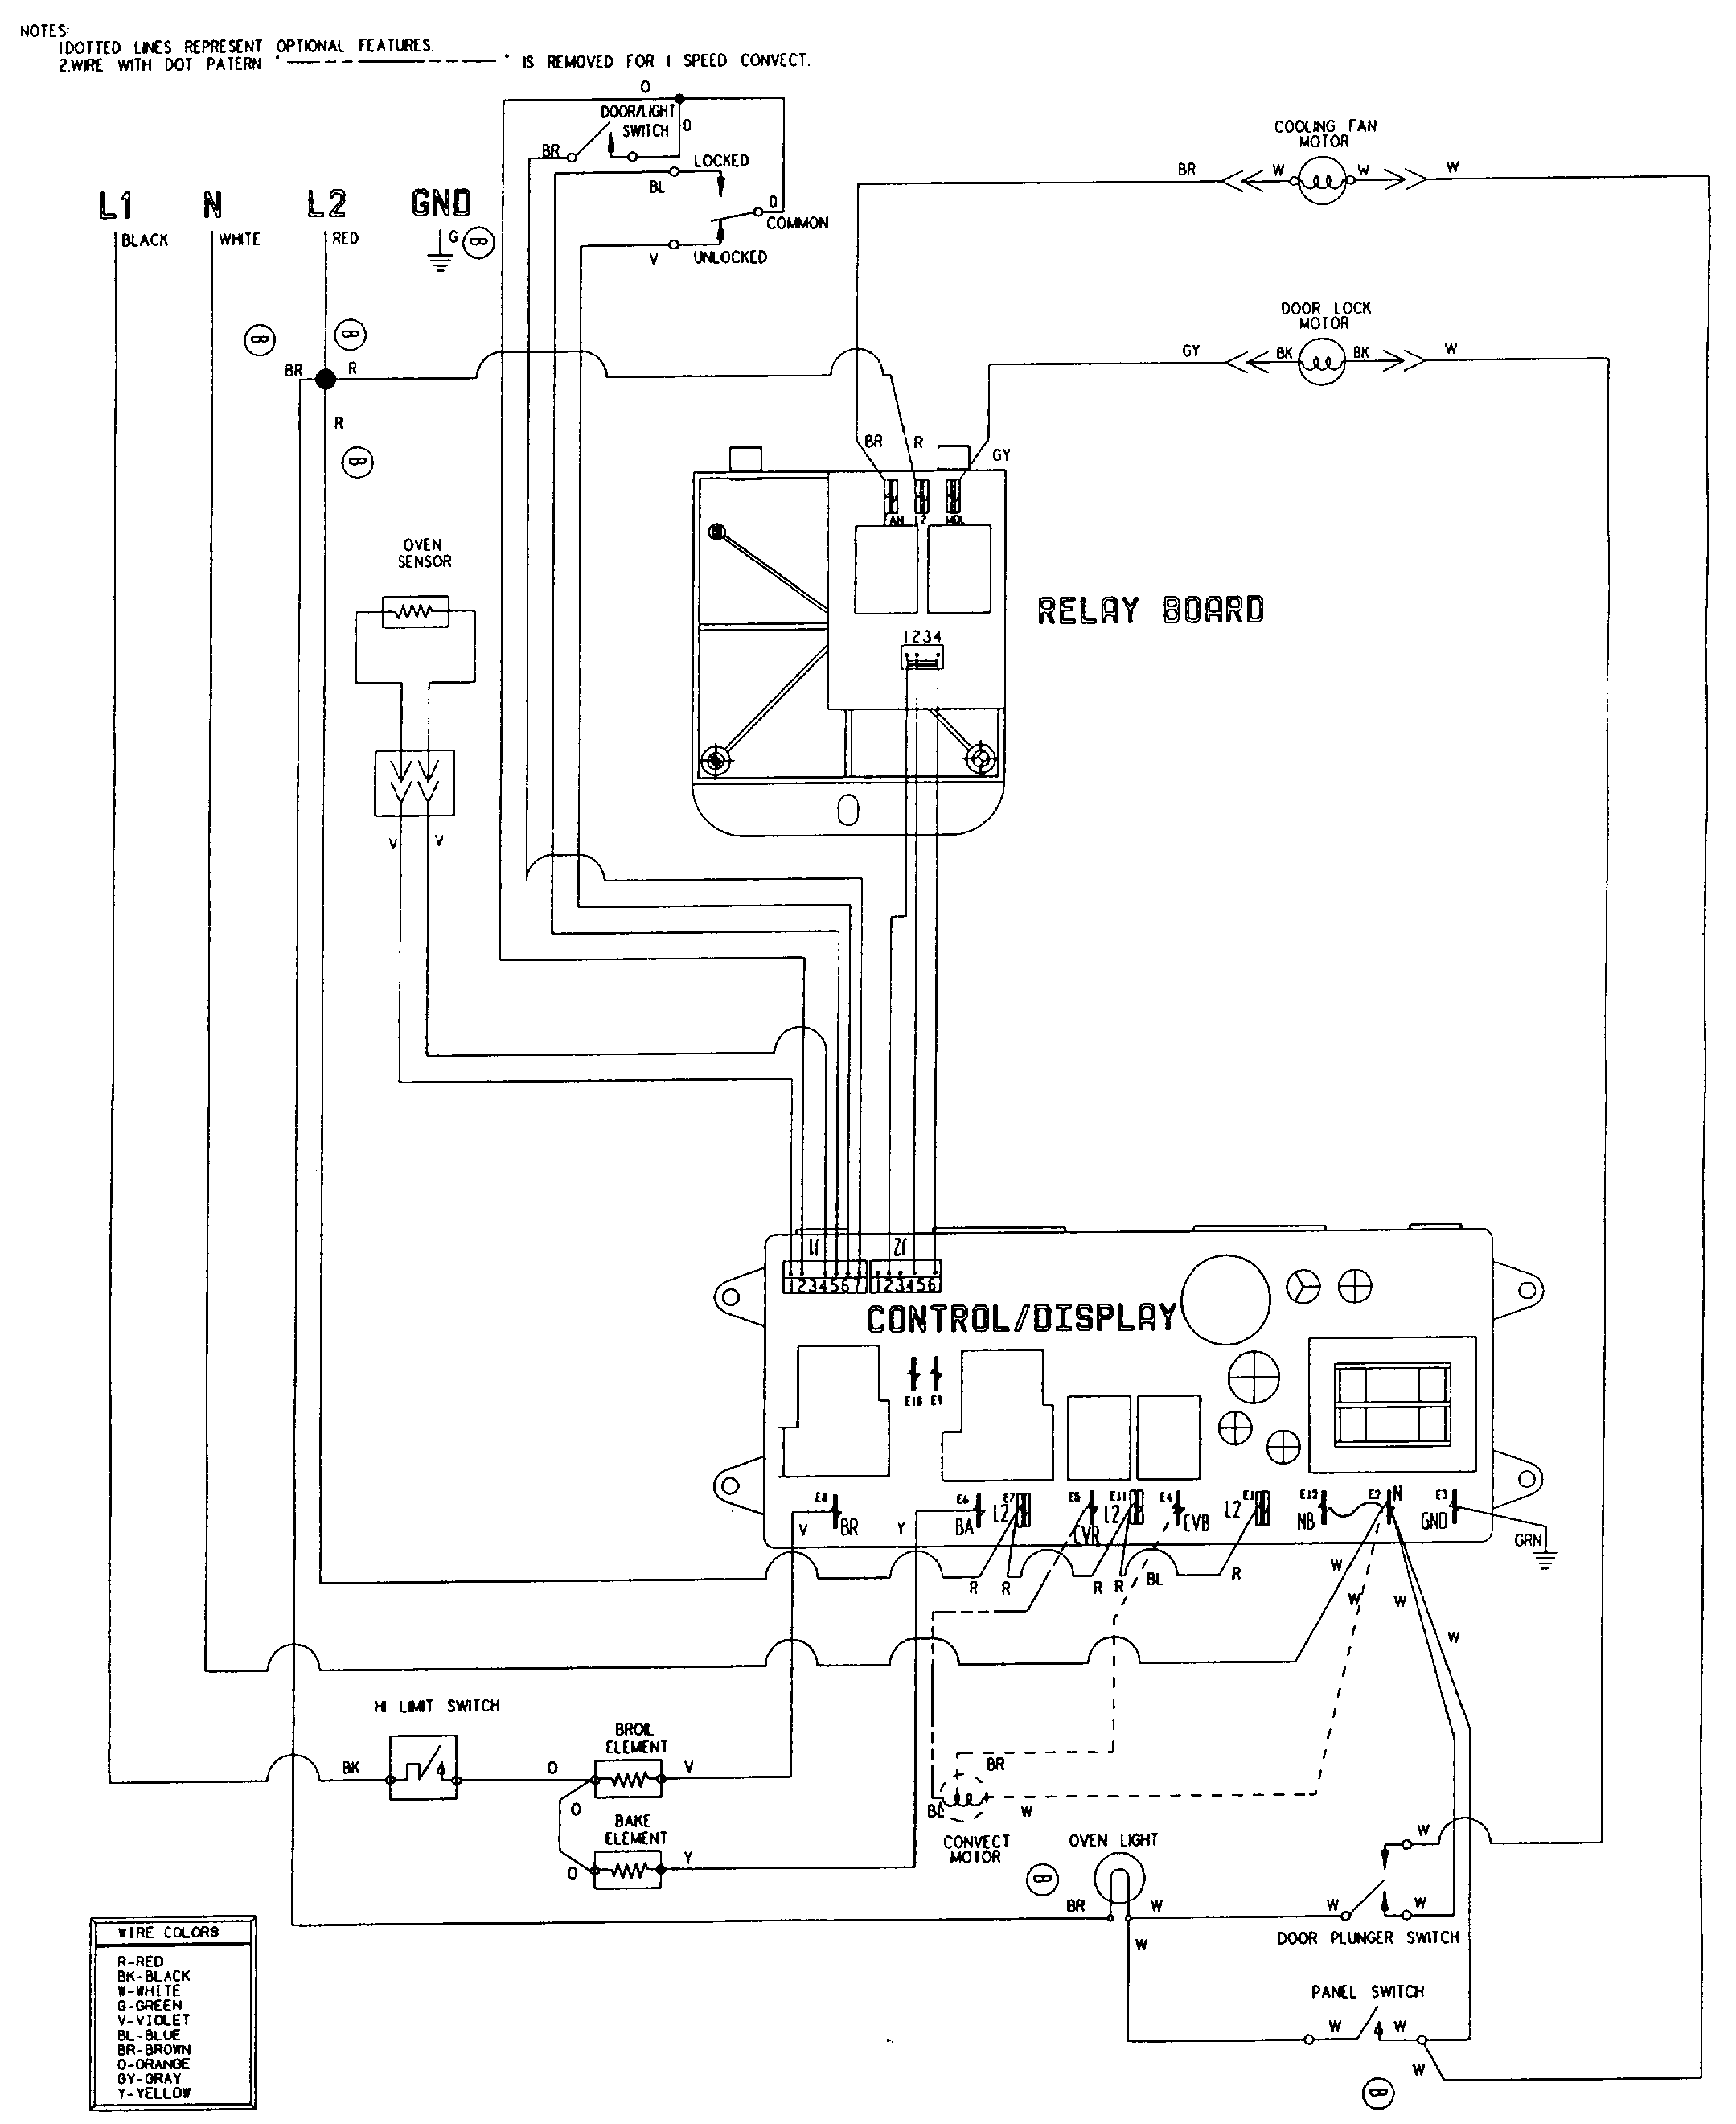 Electrical Wiring Diagram Information : Jenn air w b electric wall oven timer stove clocks